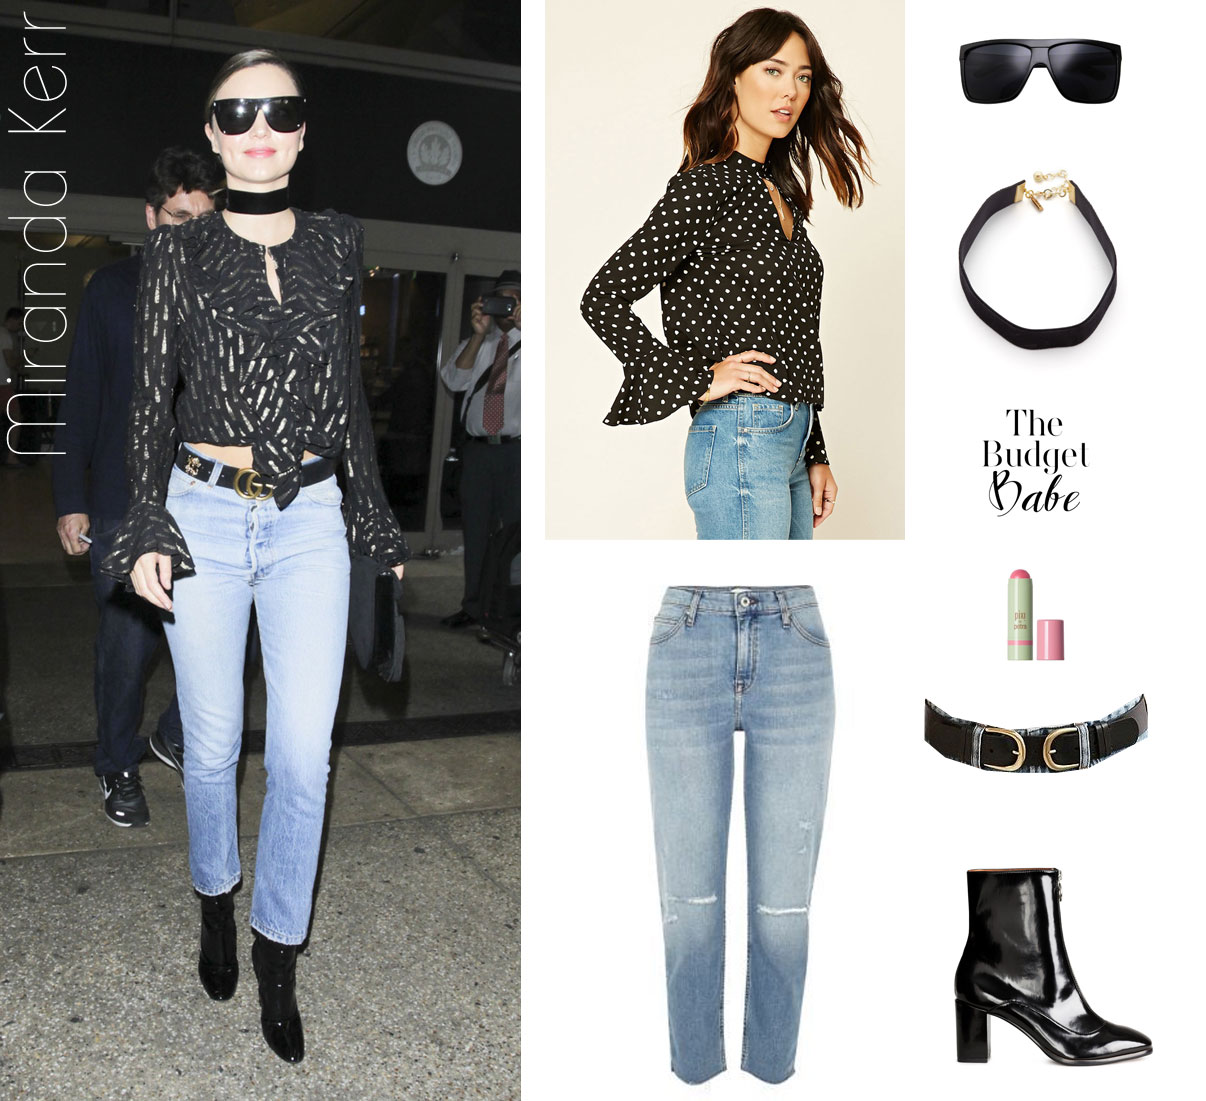 Shop Miranda Kerr's airport style look for less.